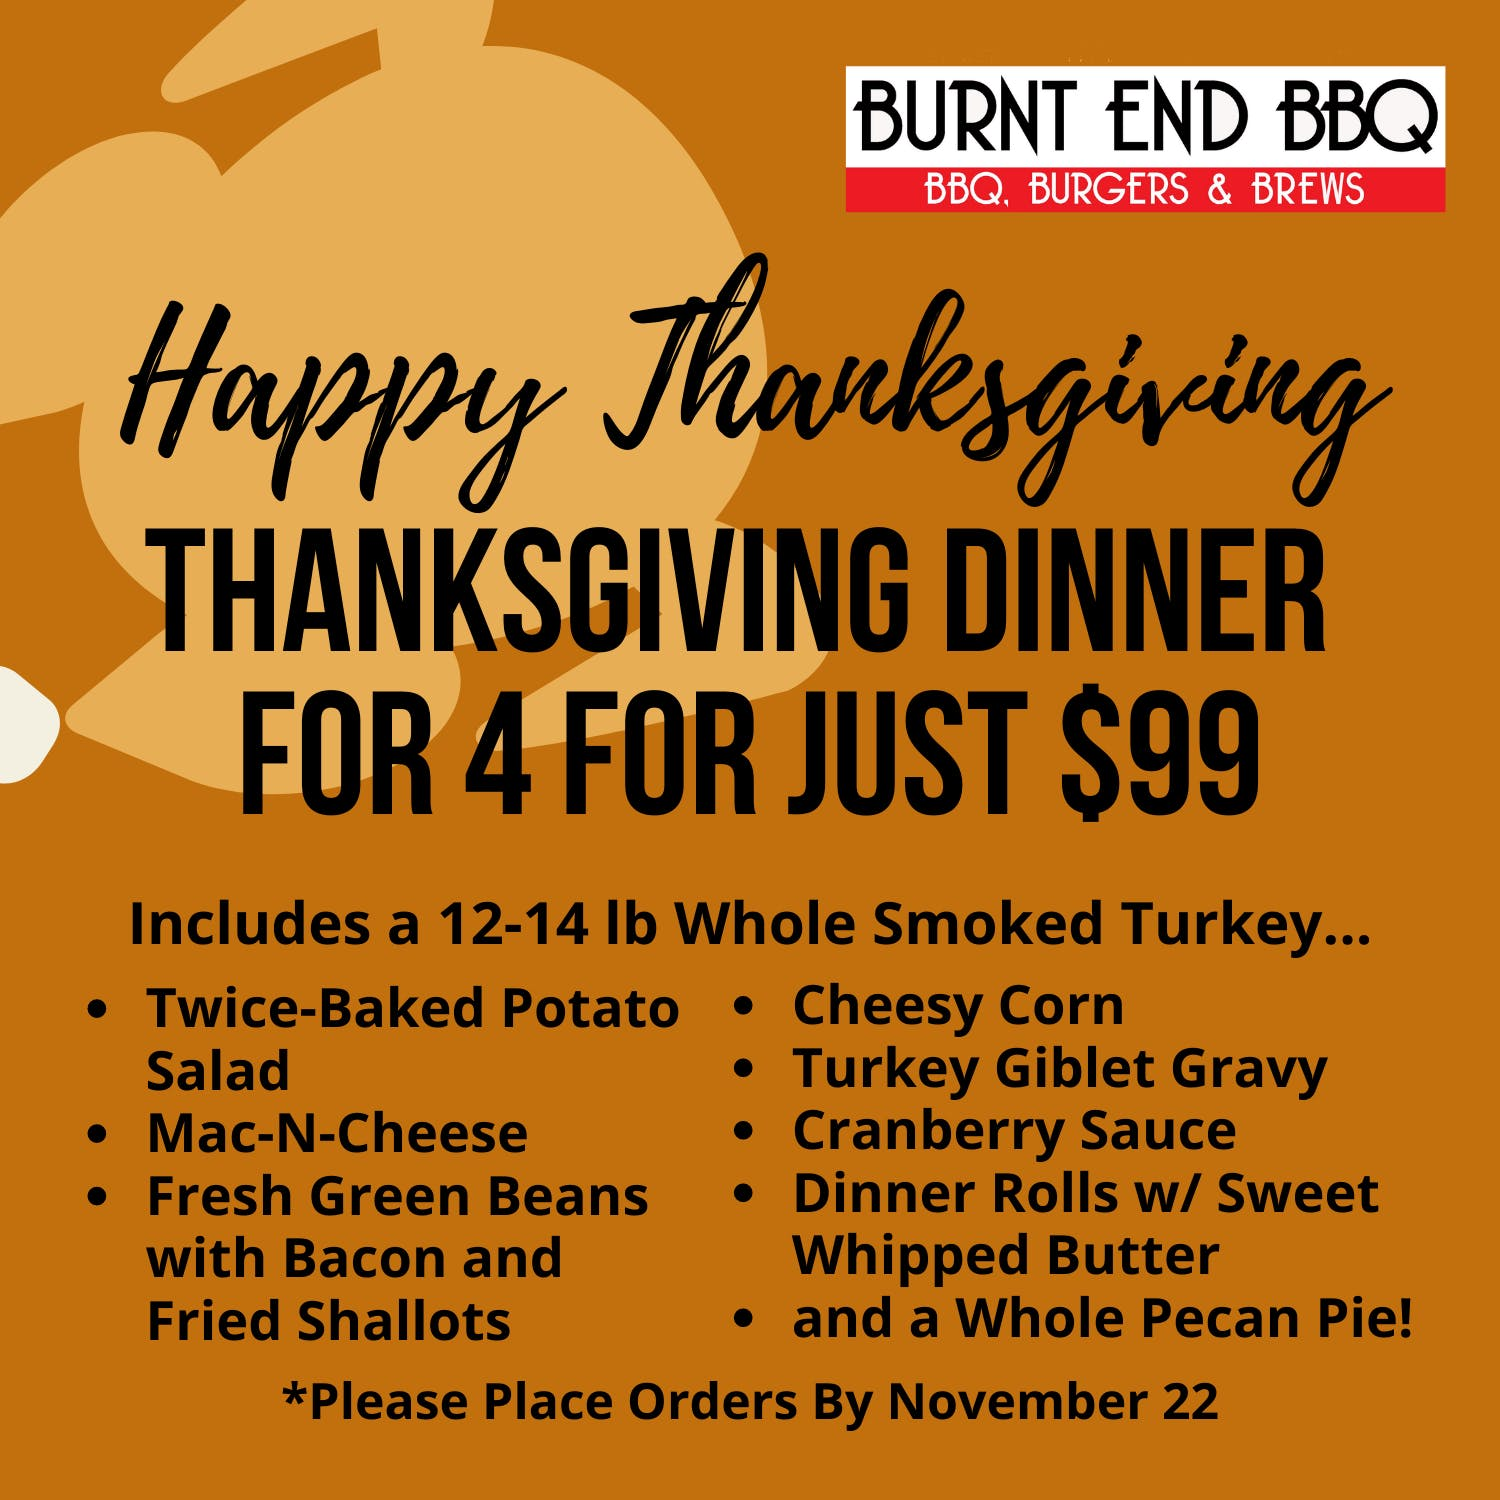 order a thanksgiving dinner for 4 from burnt end bbq for just $99